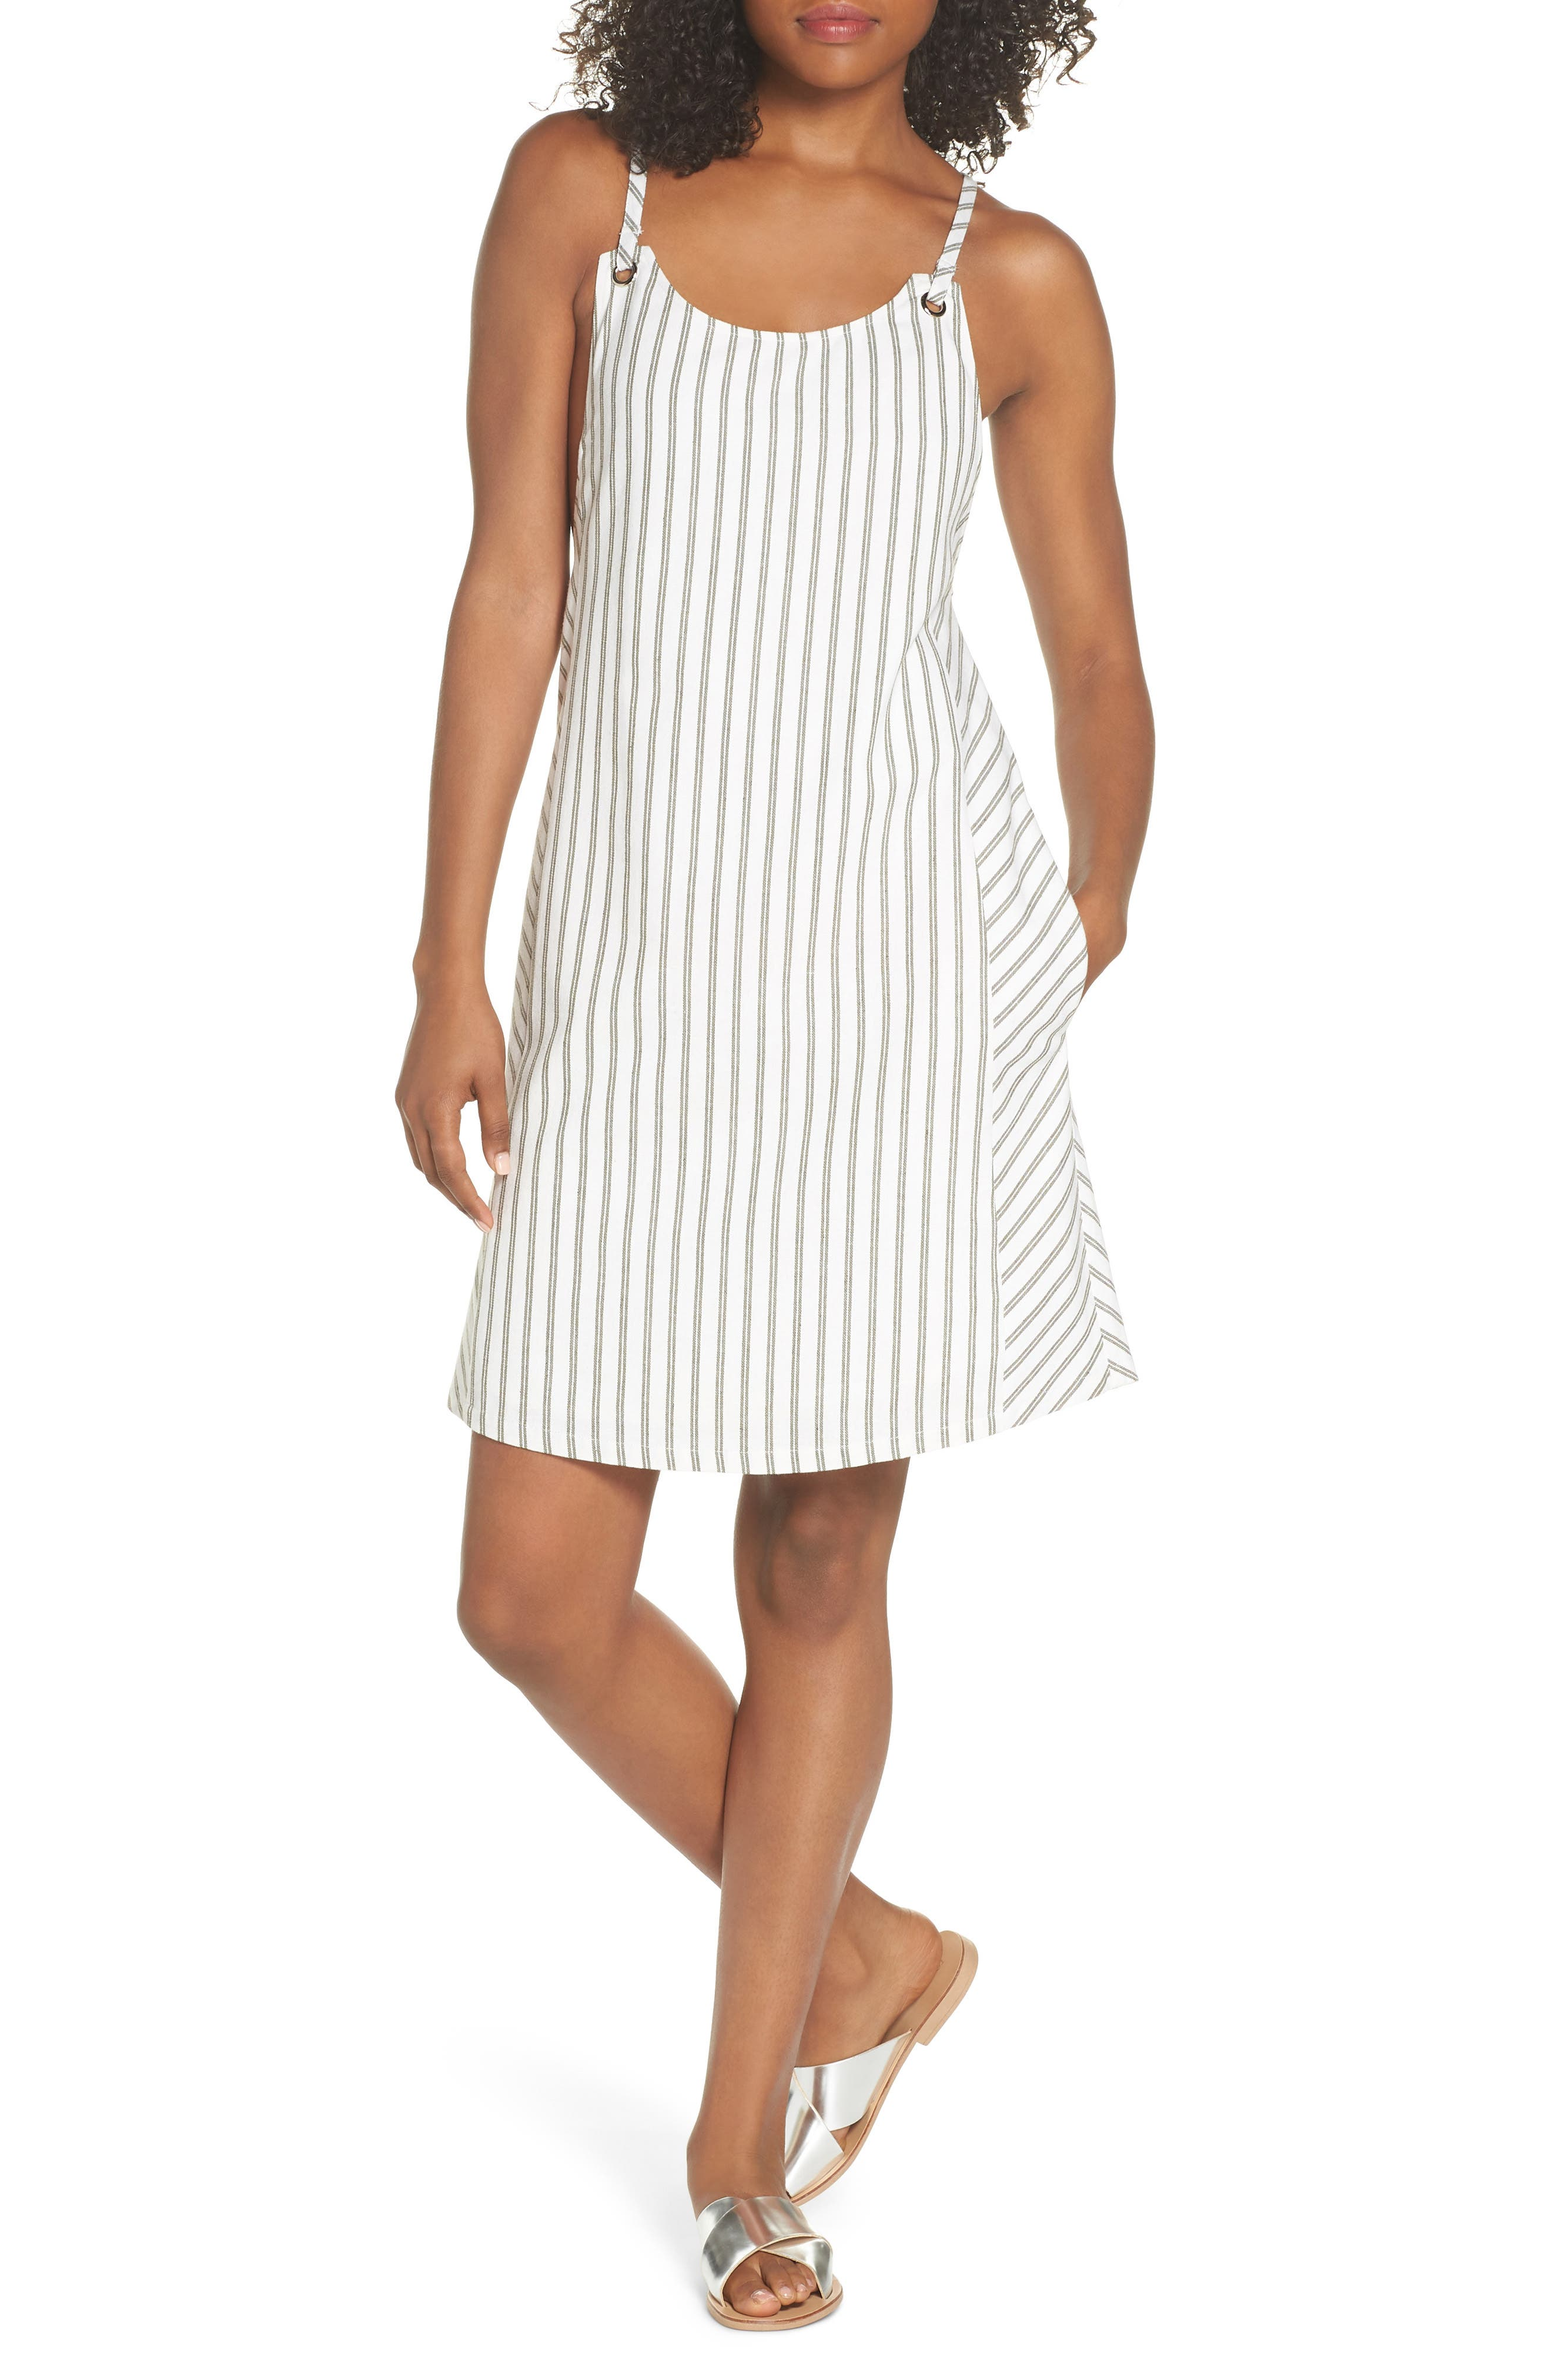 Striped Overall Dress,                             Main thumbnail 1, color,                             300